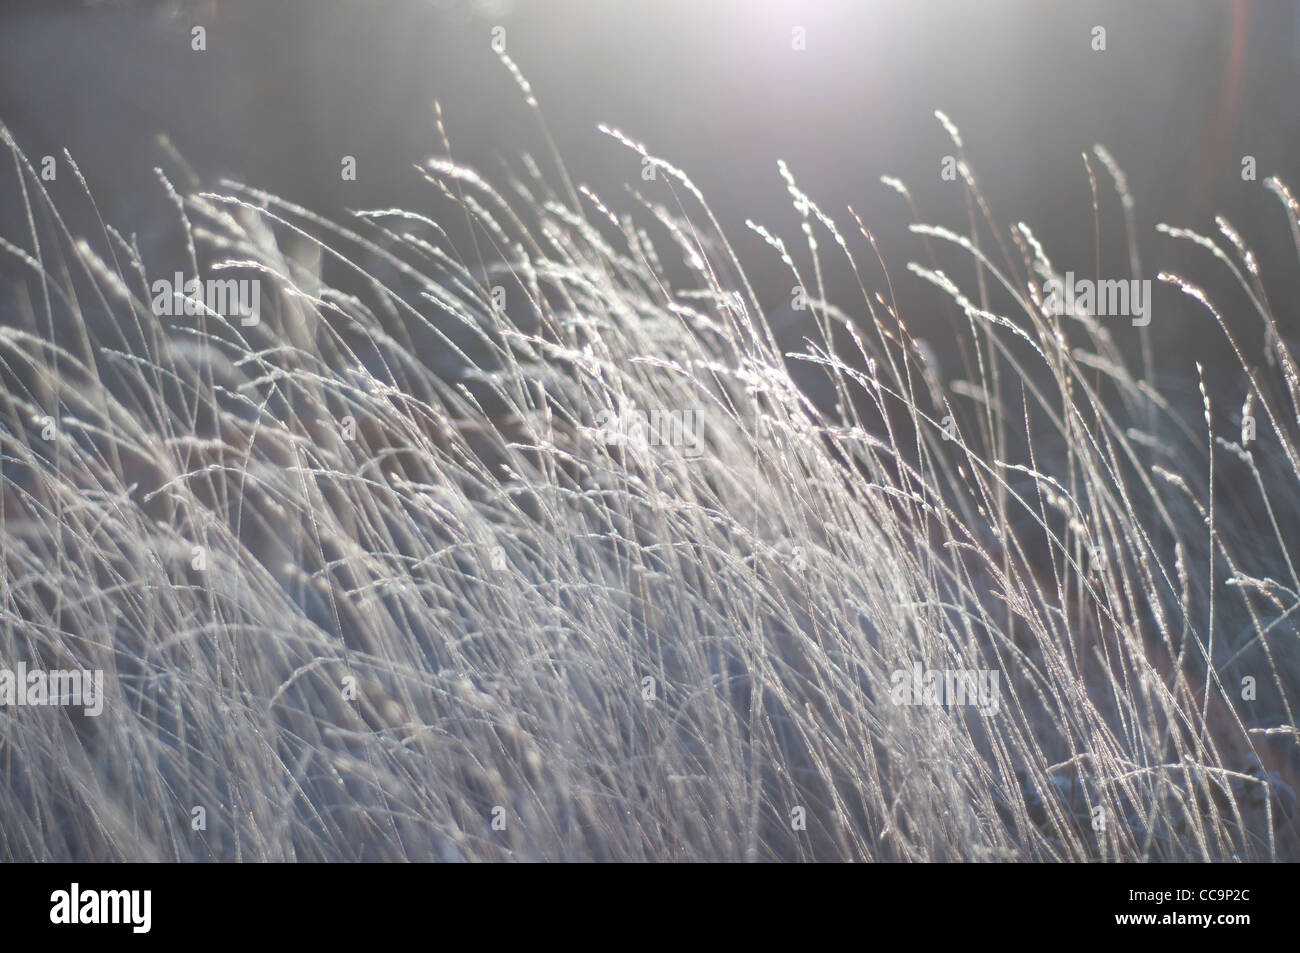 The sun on grasses on a freezing cold, frosty morning. Muted colours. A blurred background with grasses in focus Stock Photo